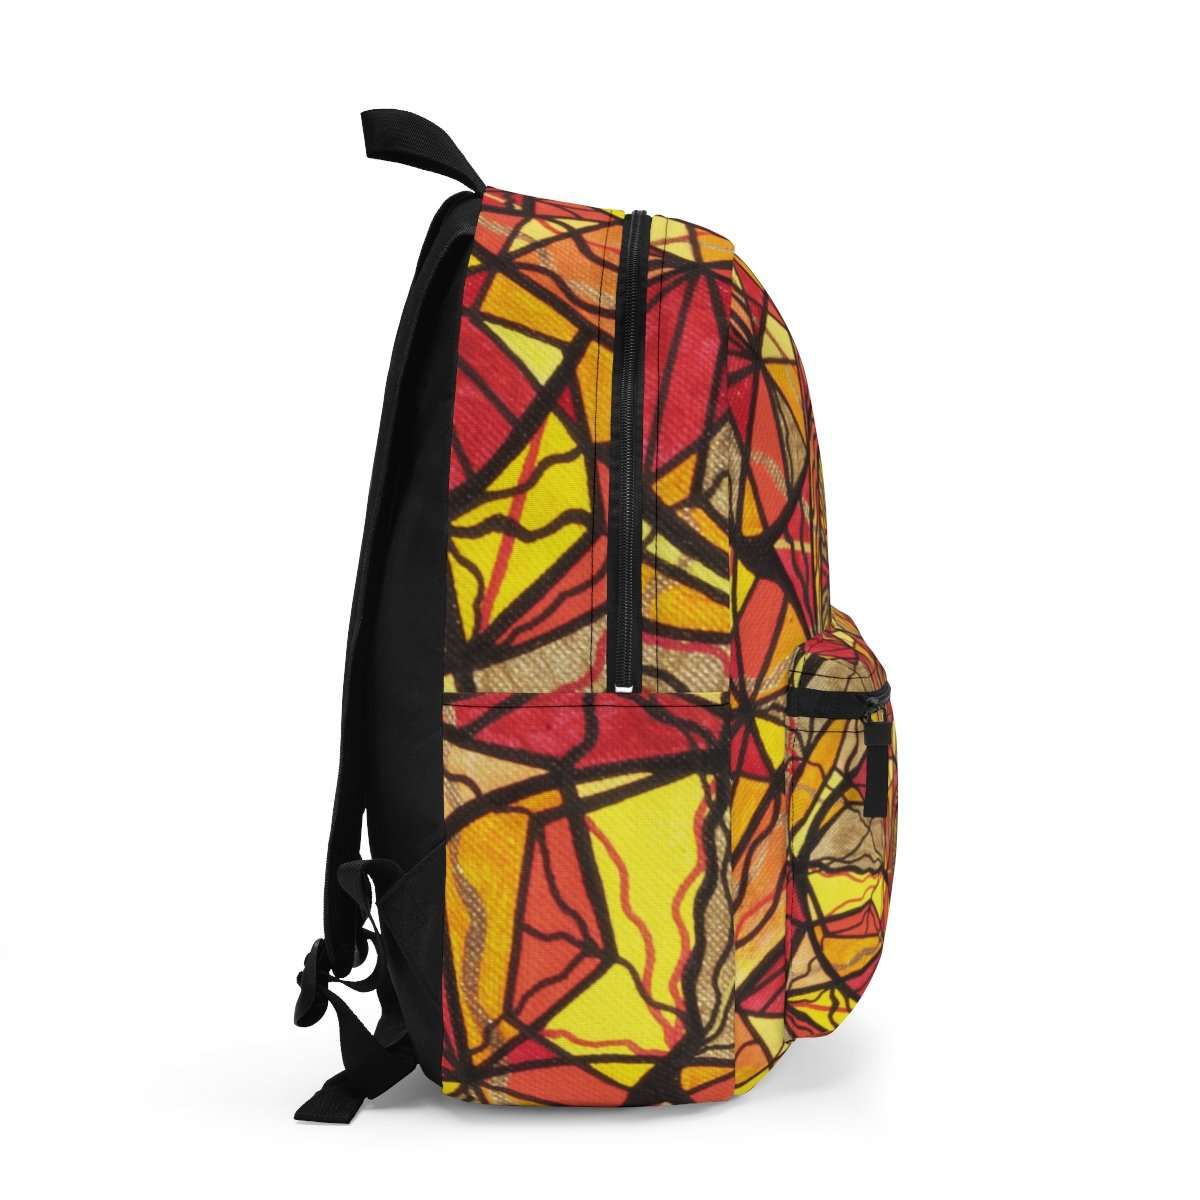 Empowerment - AOP Backpack